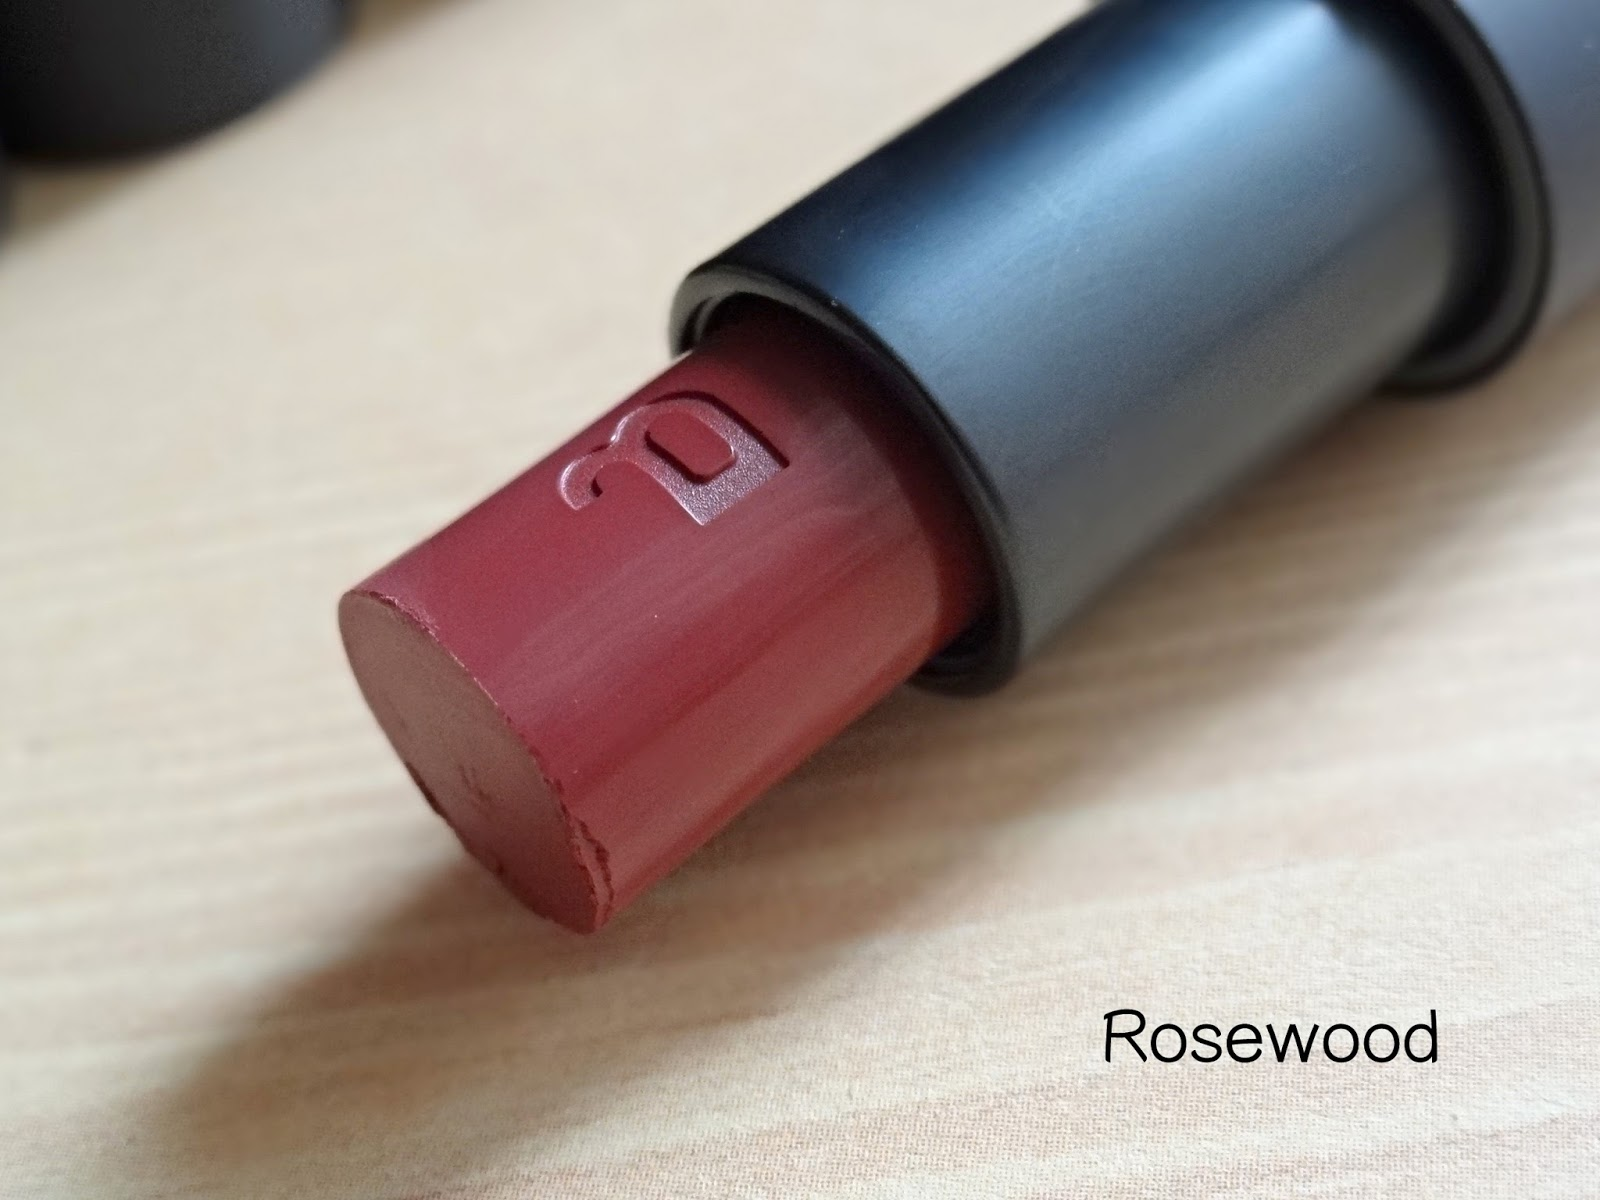 Bite Beauty Butter Cream Lipstick in Rosewood